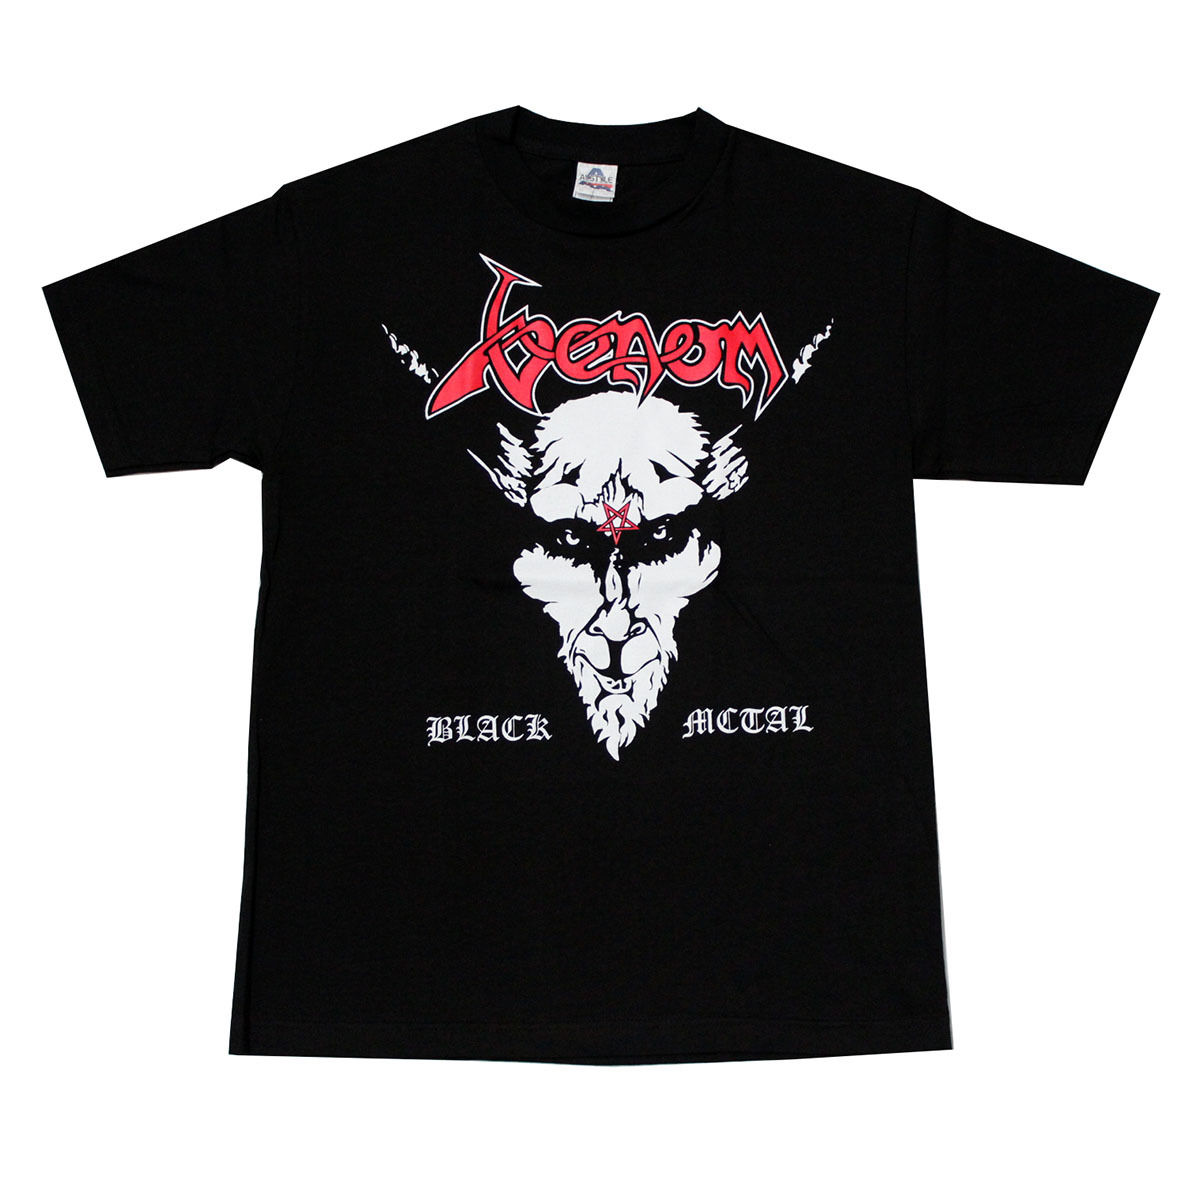 venom black metal rock band t shirt red logo cheap sale. Black Bedroom Furniture Sets. Home Design Ideas